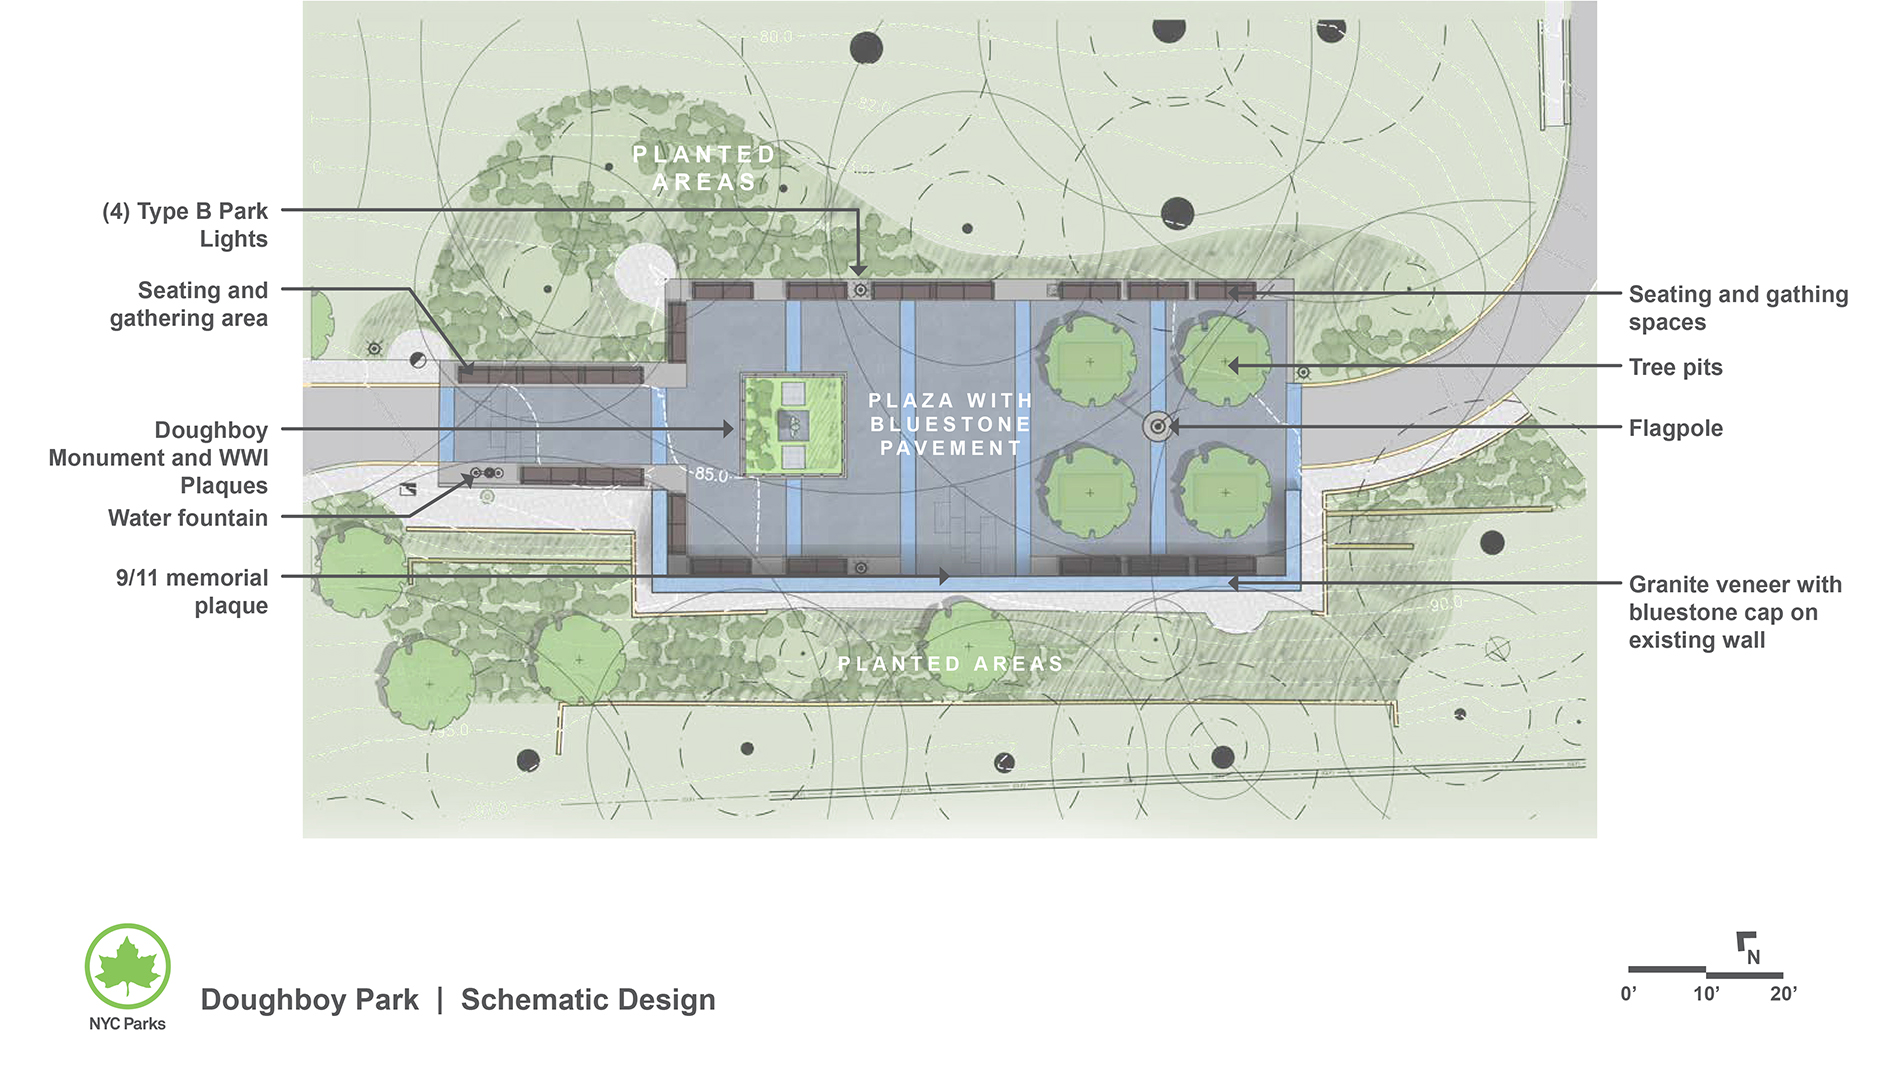 Design of Doughboy Plaza Seating Area Reconstruction